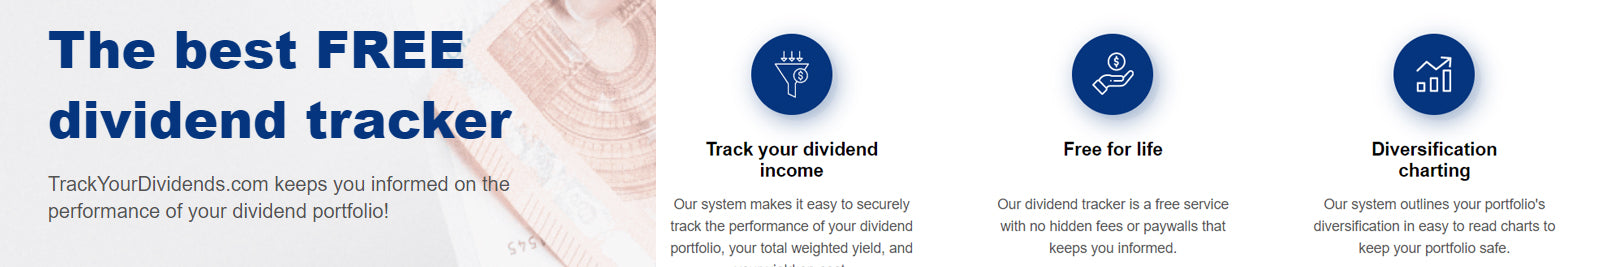 track your dividends